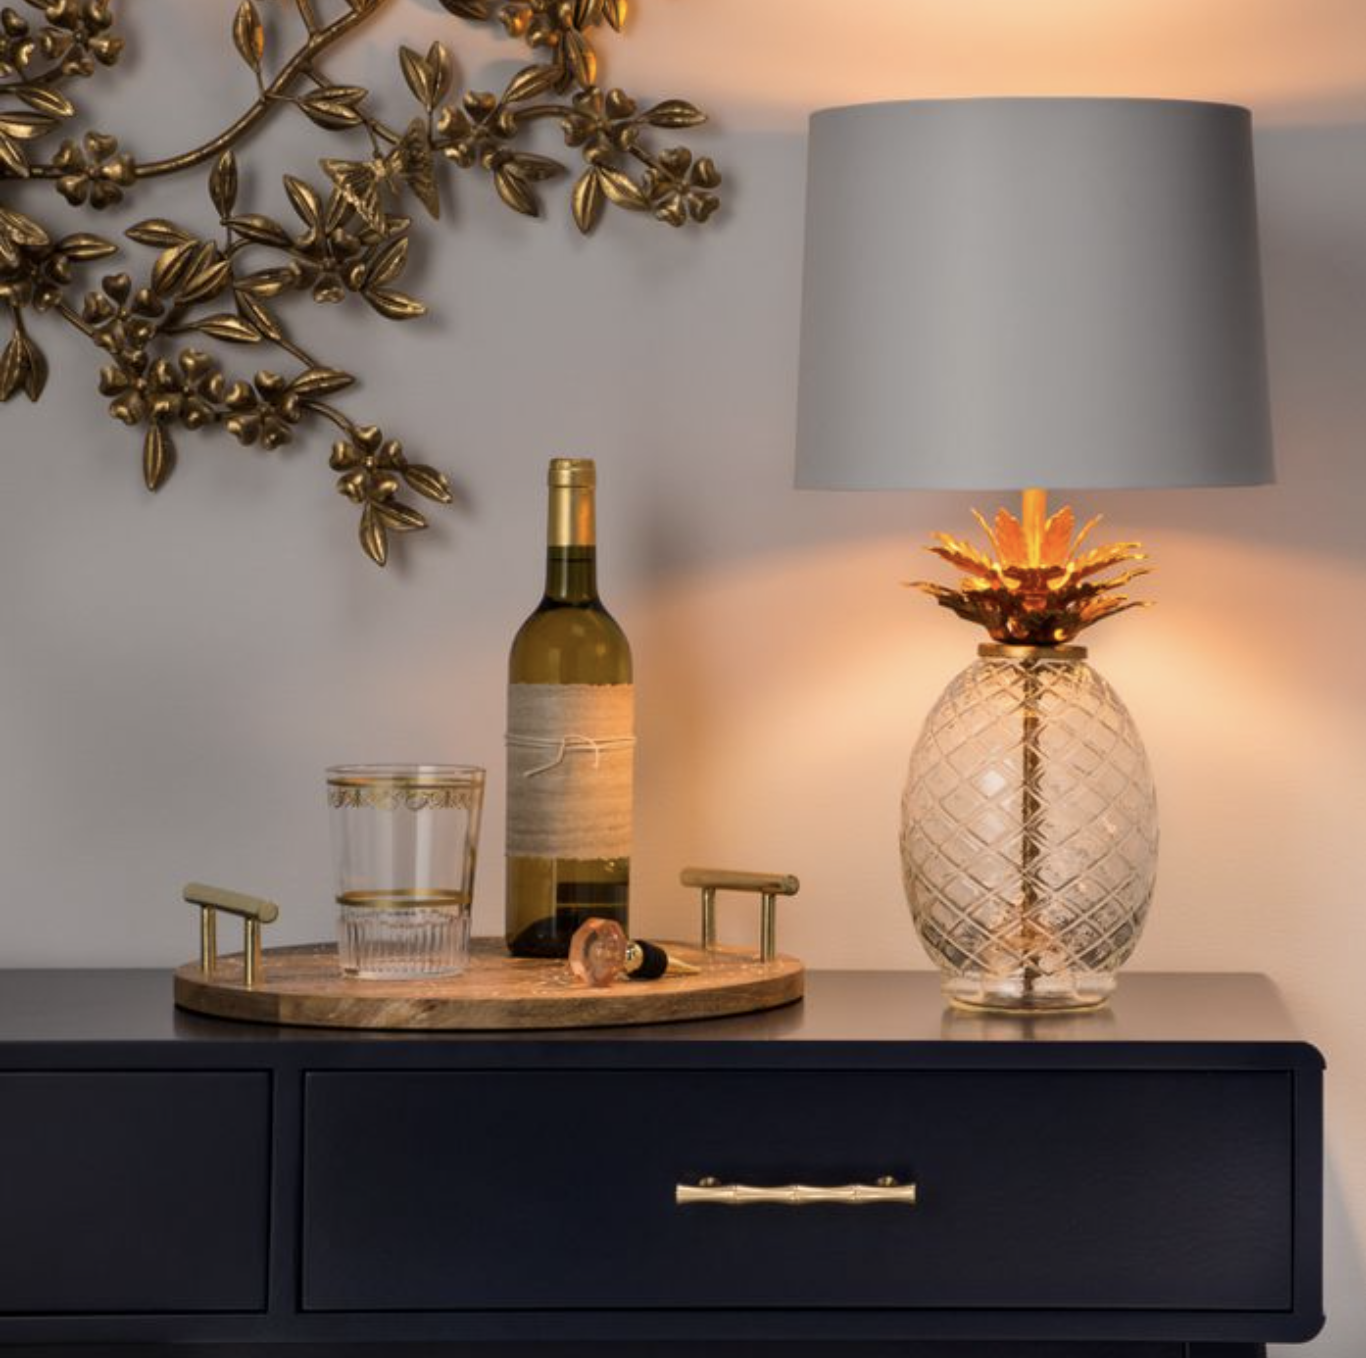 the glass pineapple table lamp on a credenza